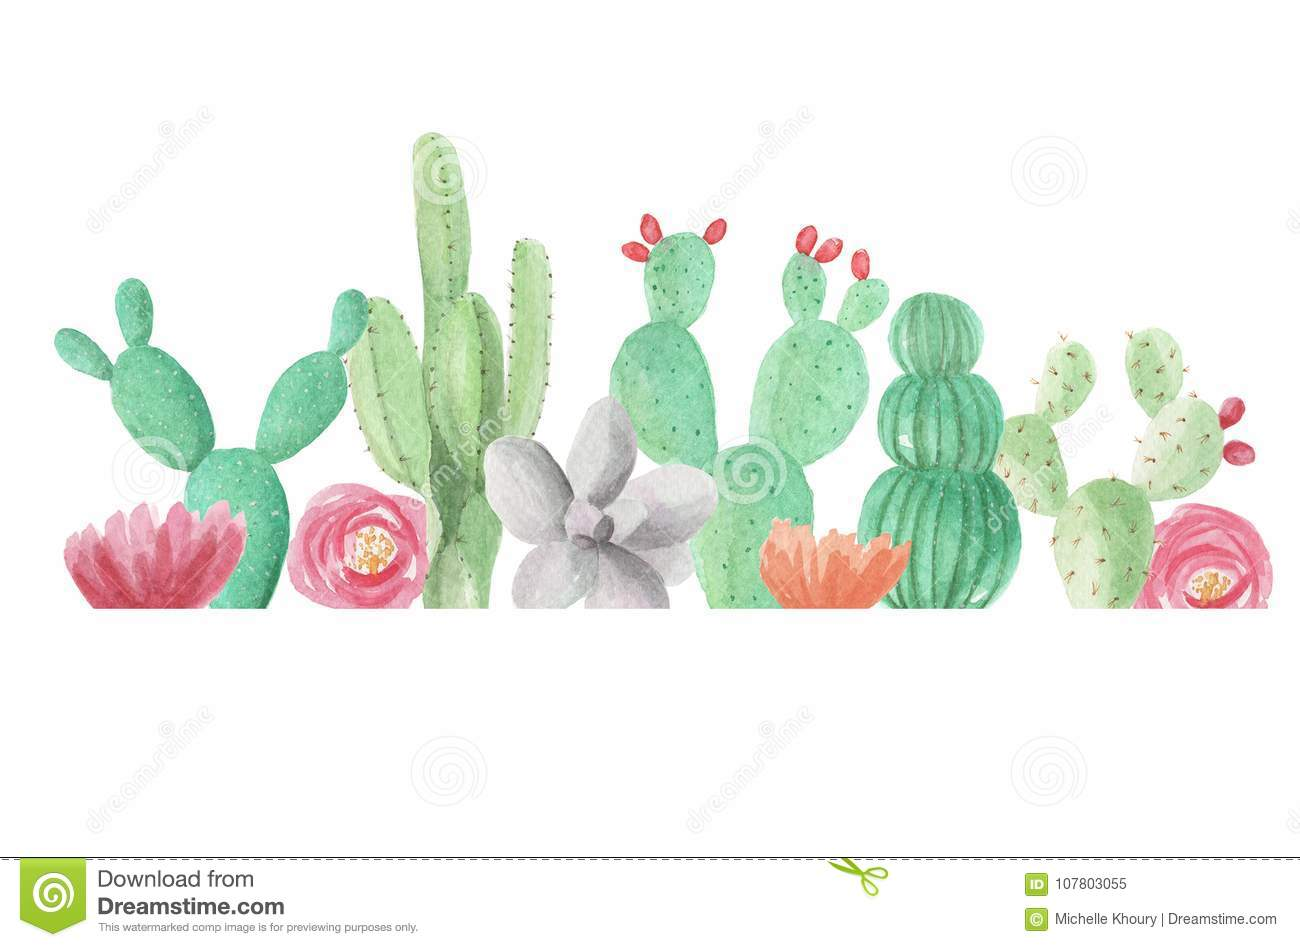 Clipart cactus free clipart stock Free watercolor cactus clipart 3 » Clipart Station clipart stock